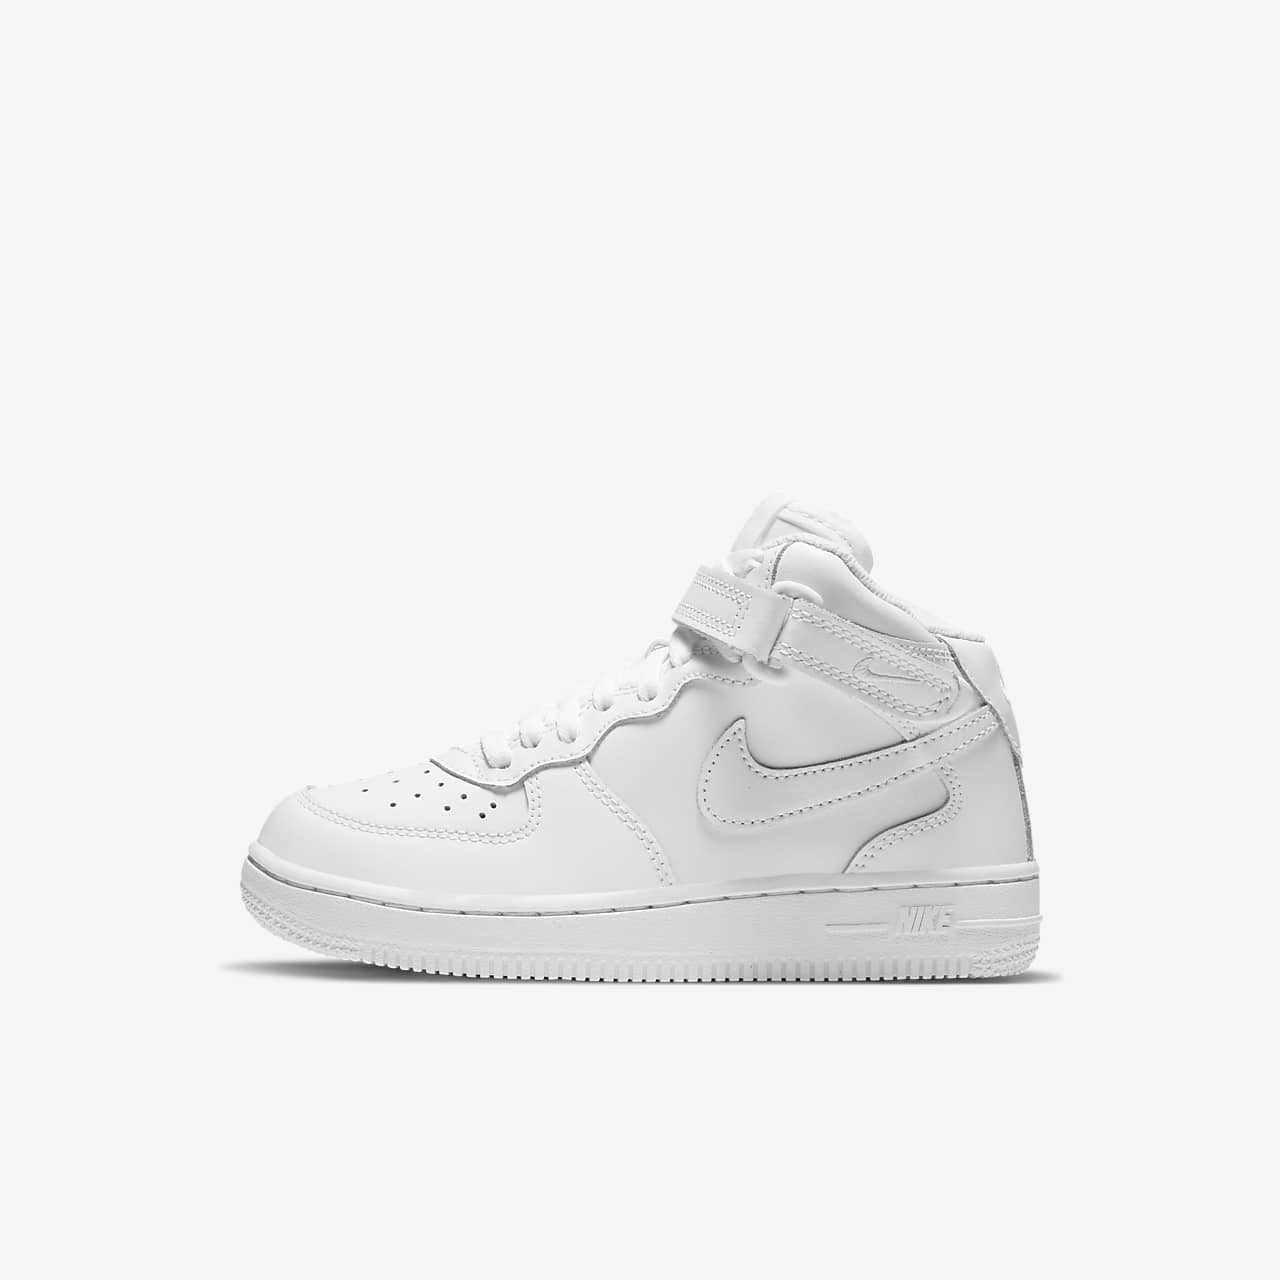 separation shoes 12df6 a1ac9 Little Kids  Shoe. Nike Air Force 1 Mid